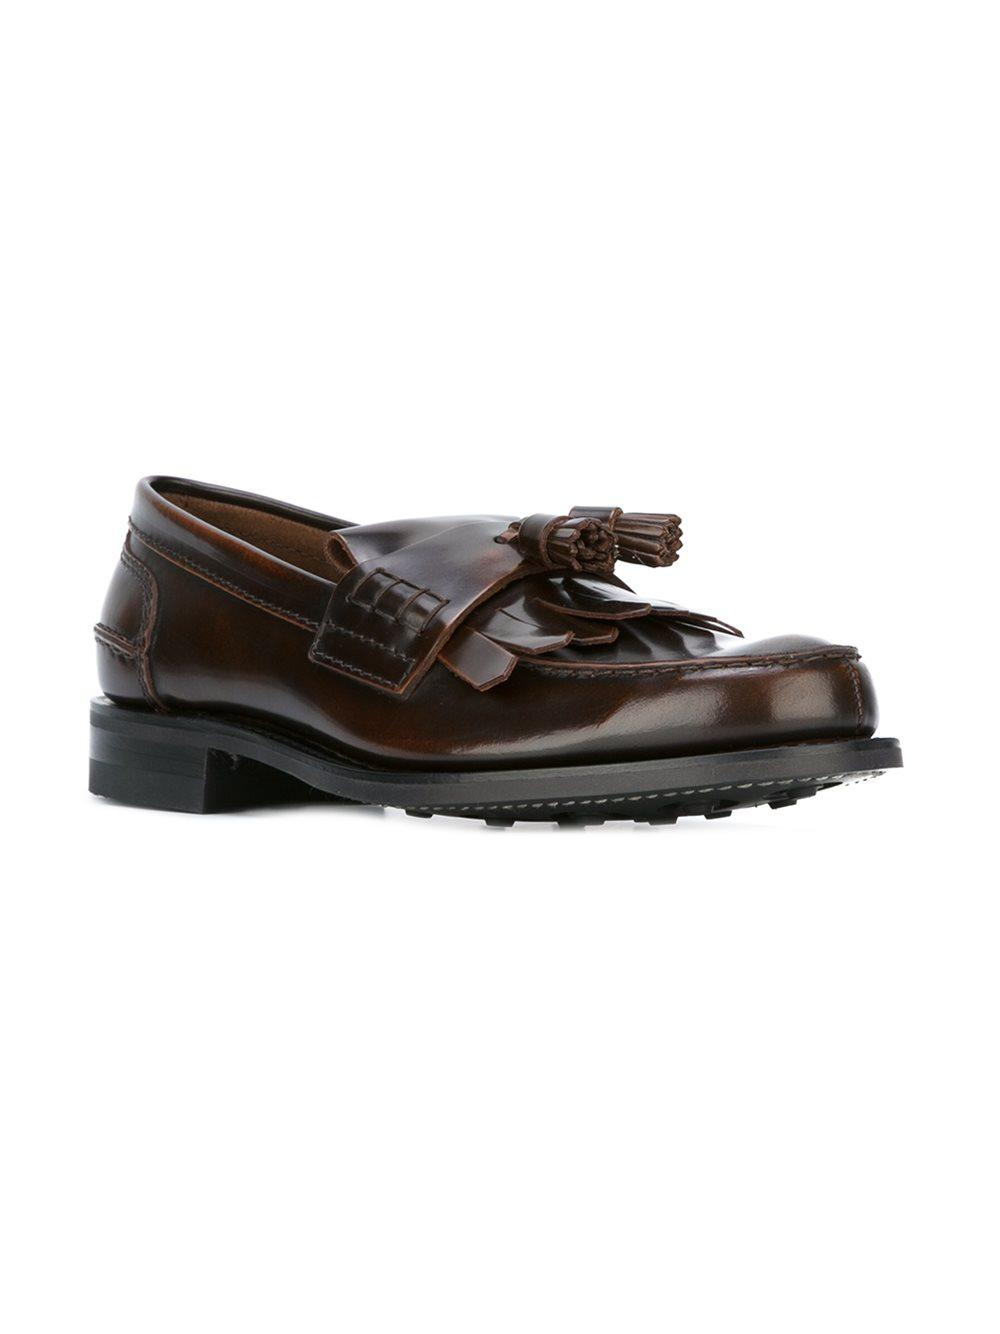 6aadc5c8bc0 Lyst - Church s Oreham Loafers in Brown for Men - Save 19.841269841269835%